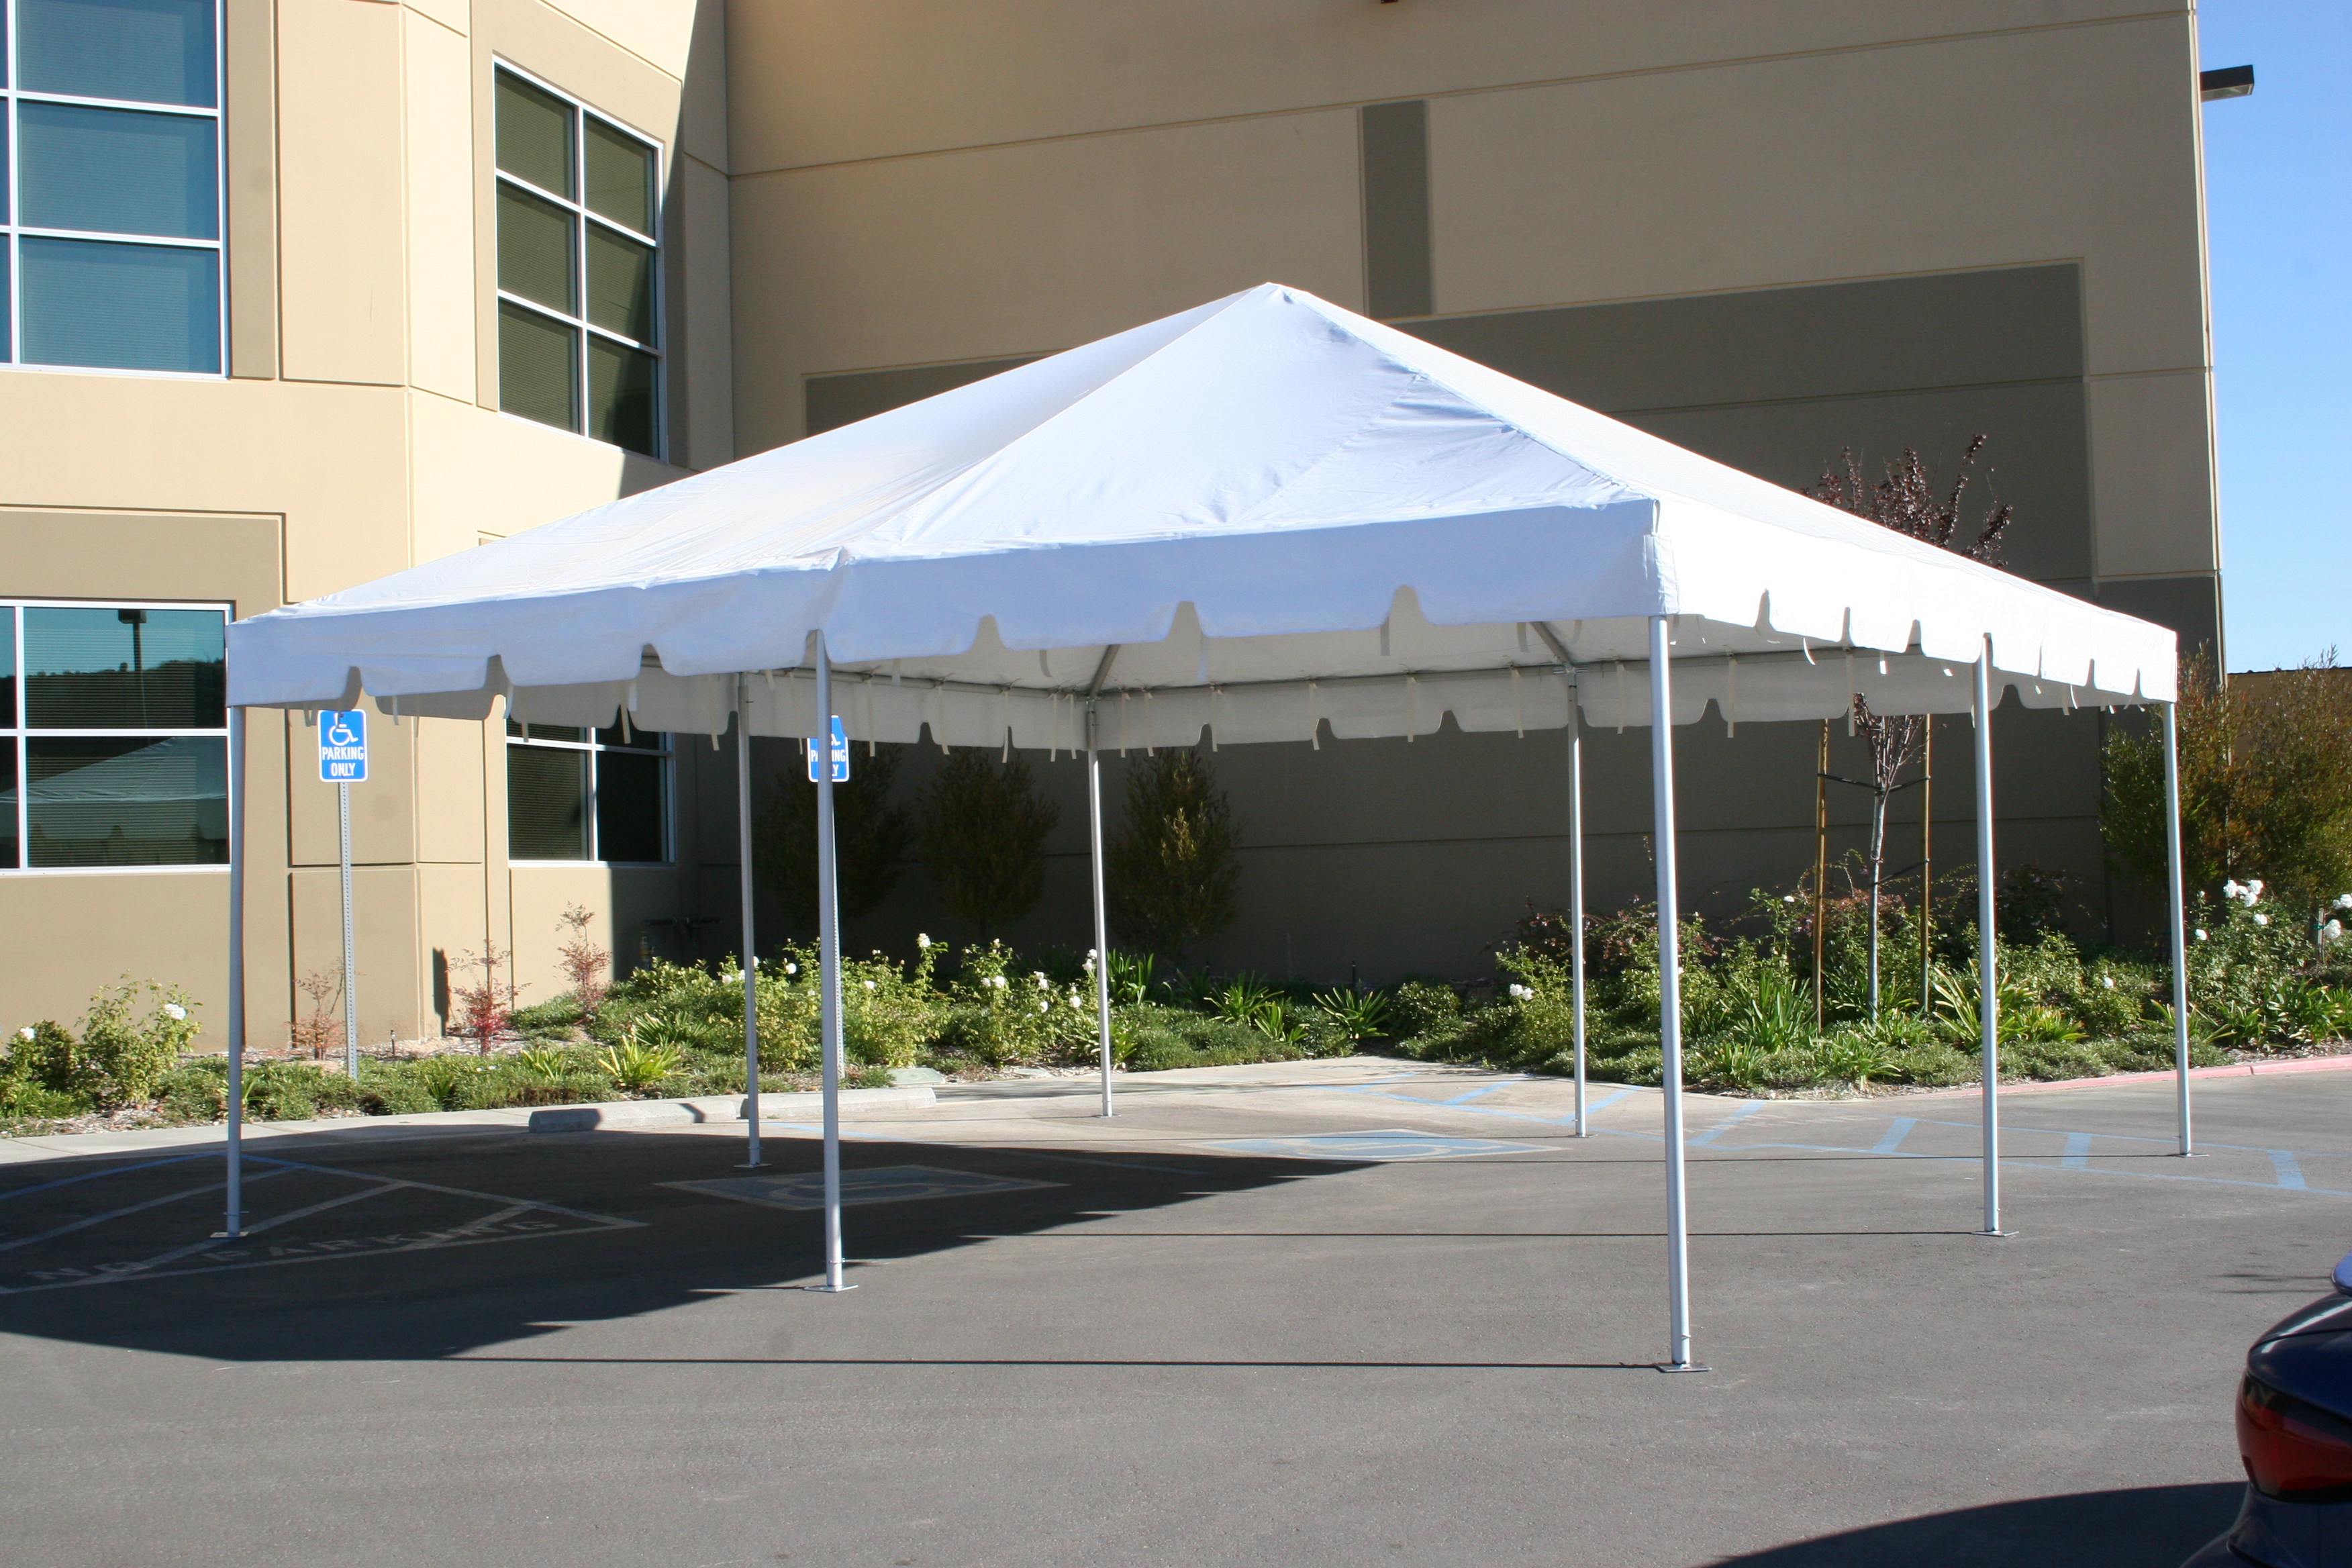 20x20 frame tents for sale worldwide tents for 20x20 house